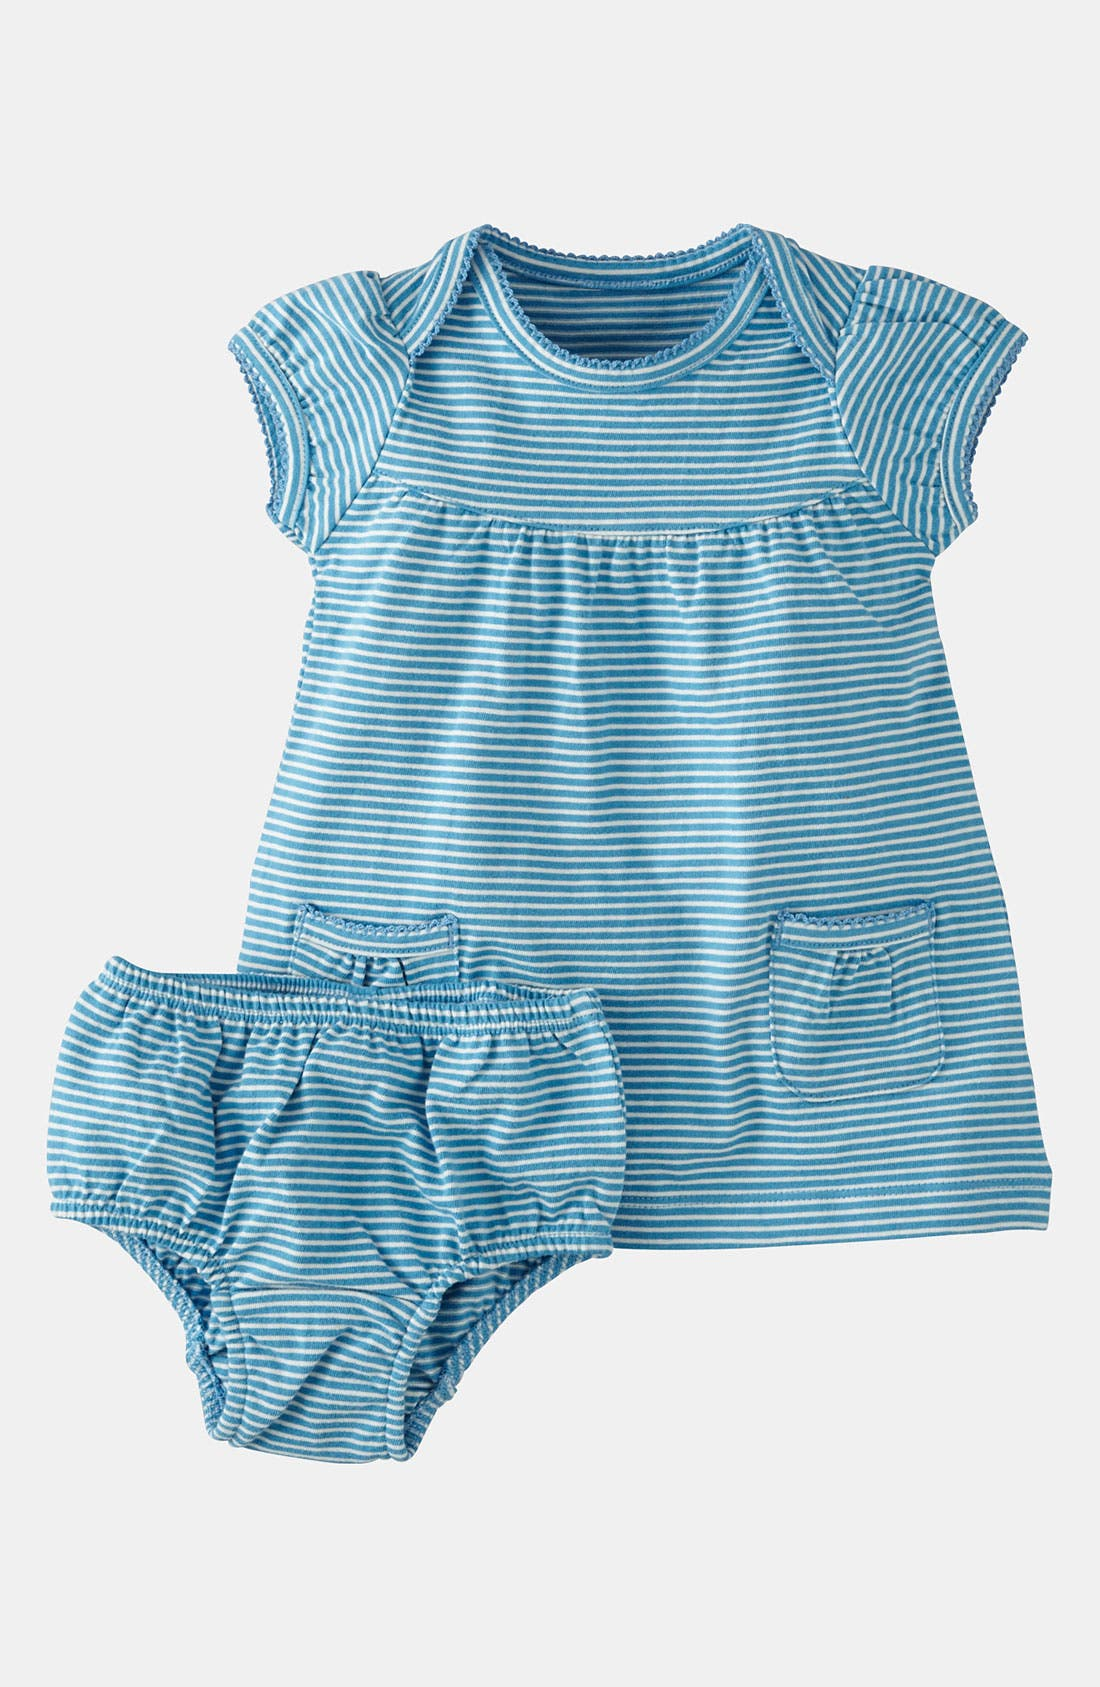 Alternate Image 1 Selected - Mini Boden 'Simple' Jersey Dress & Bloomers (Baby)